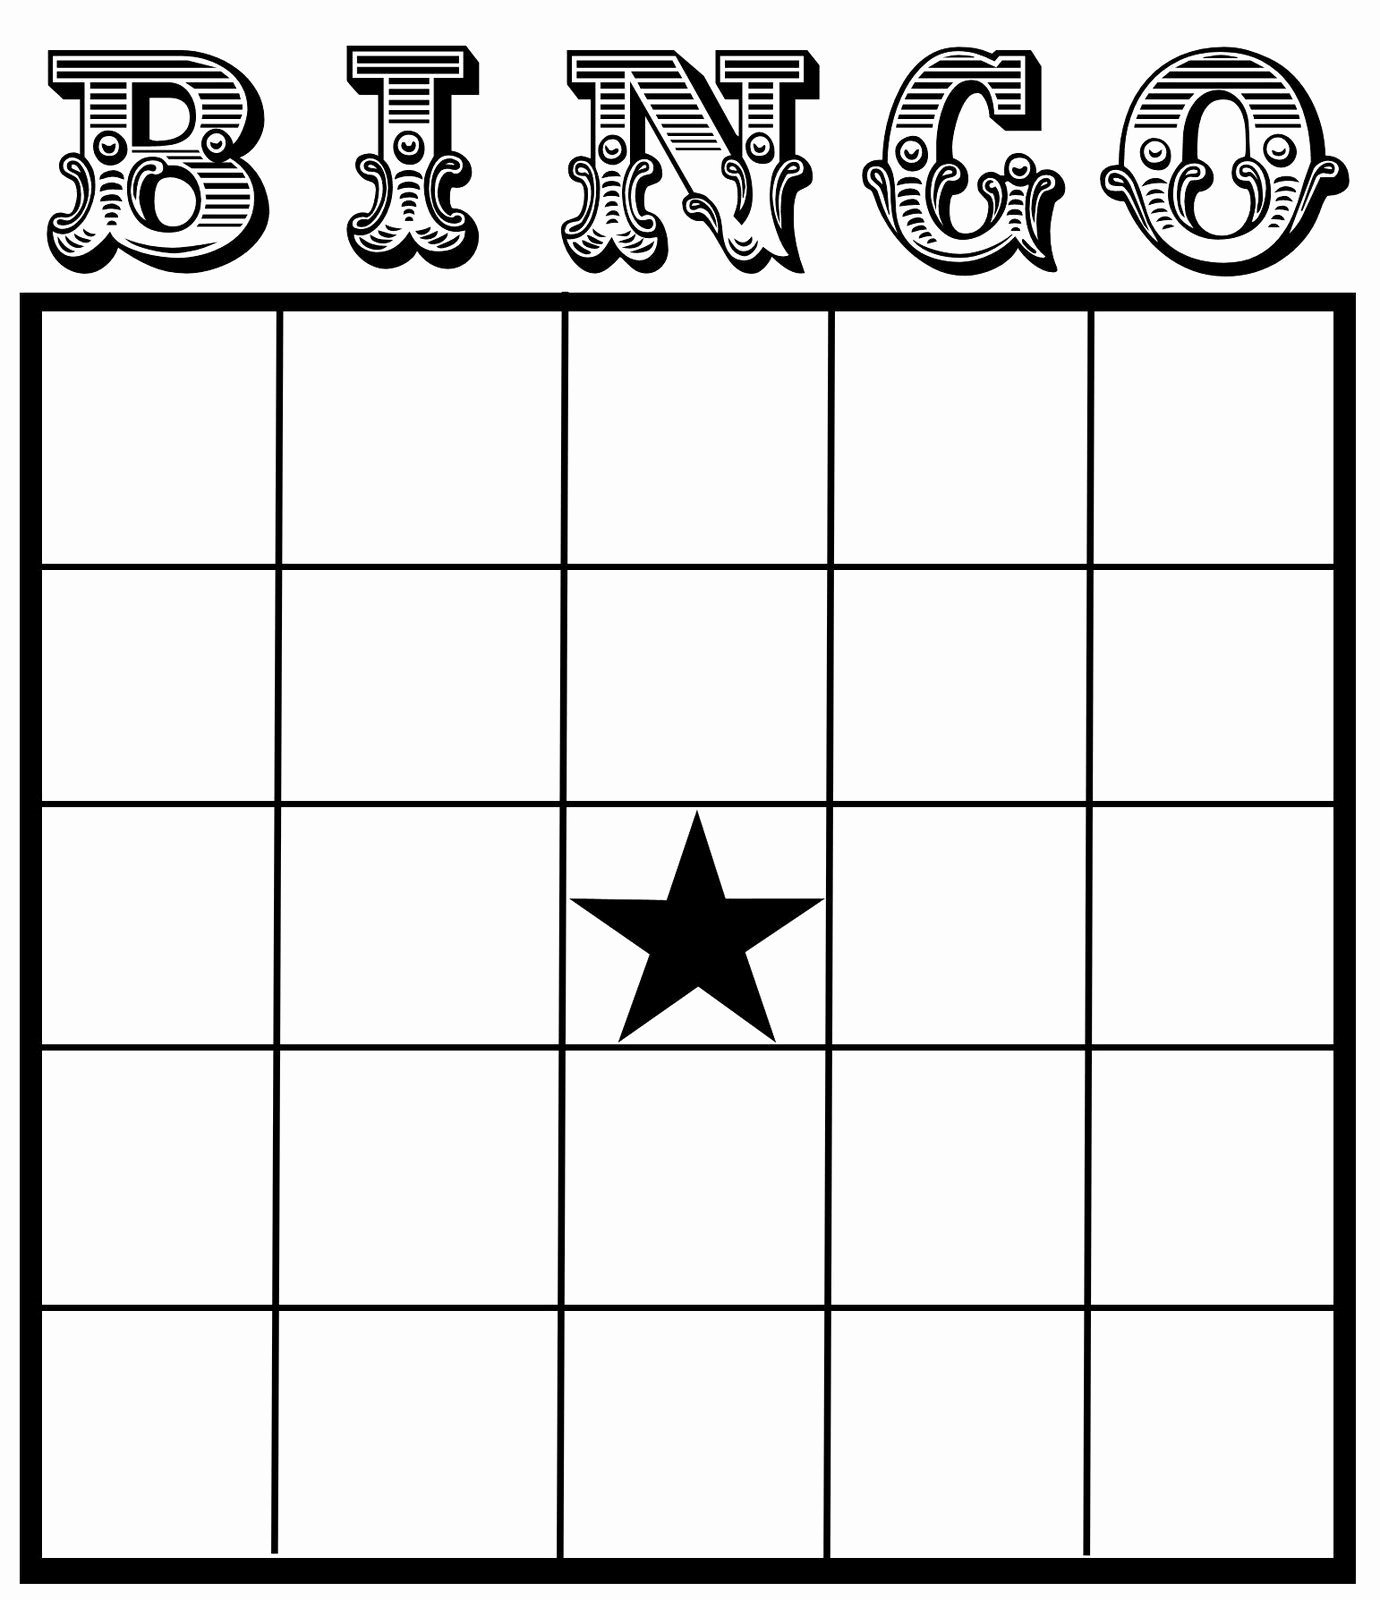 Free Blank Bingo Cards Unique Christine Zani Bingo Card Printables to